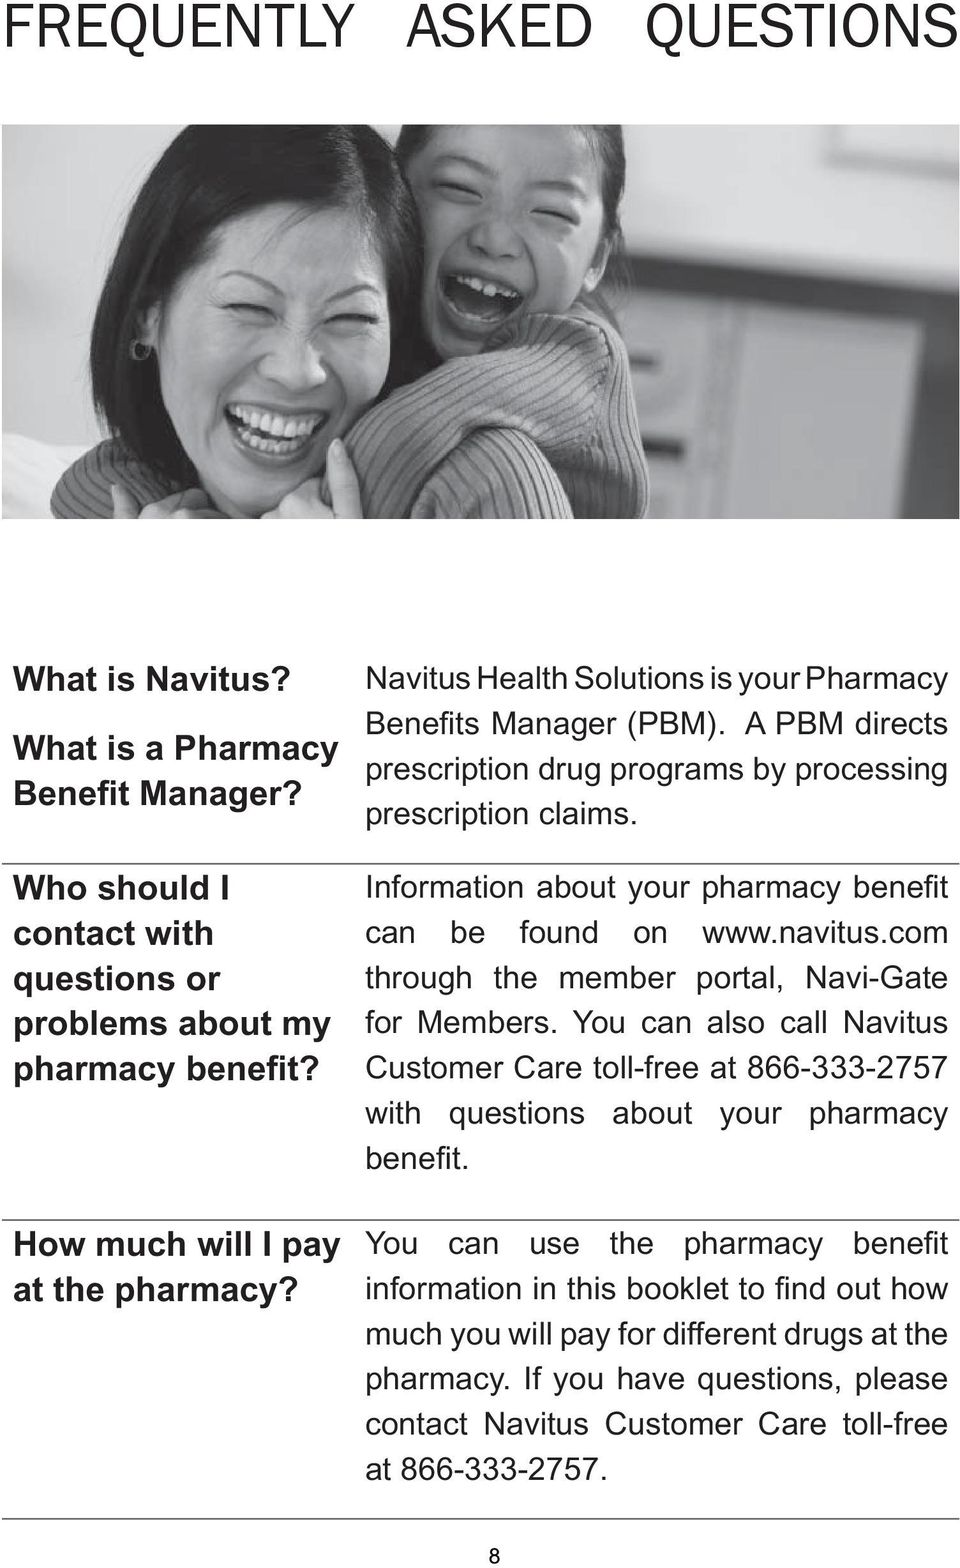 Information about your pharmacy benefi t can be found on www.navitus.com through the member portal, Navi-Gate for Members.